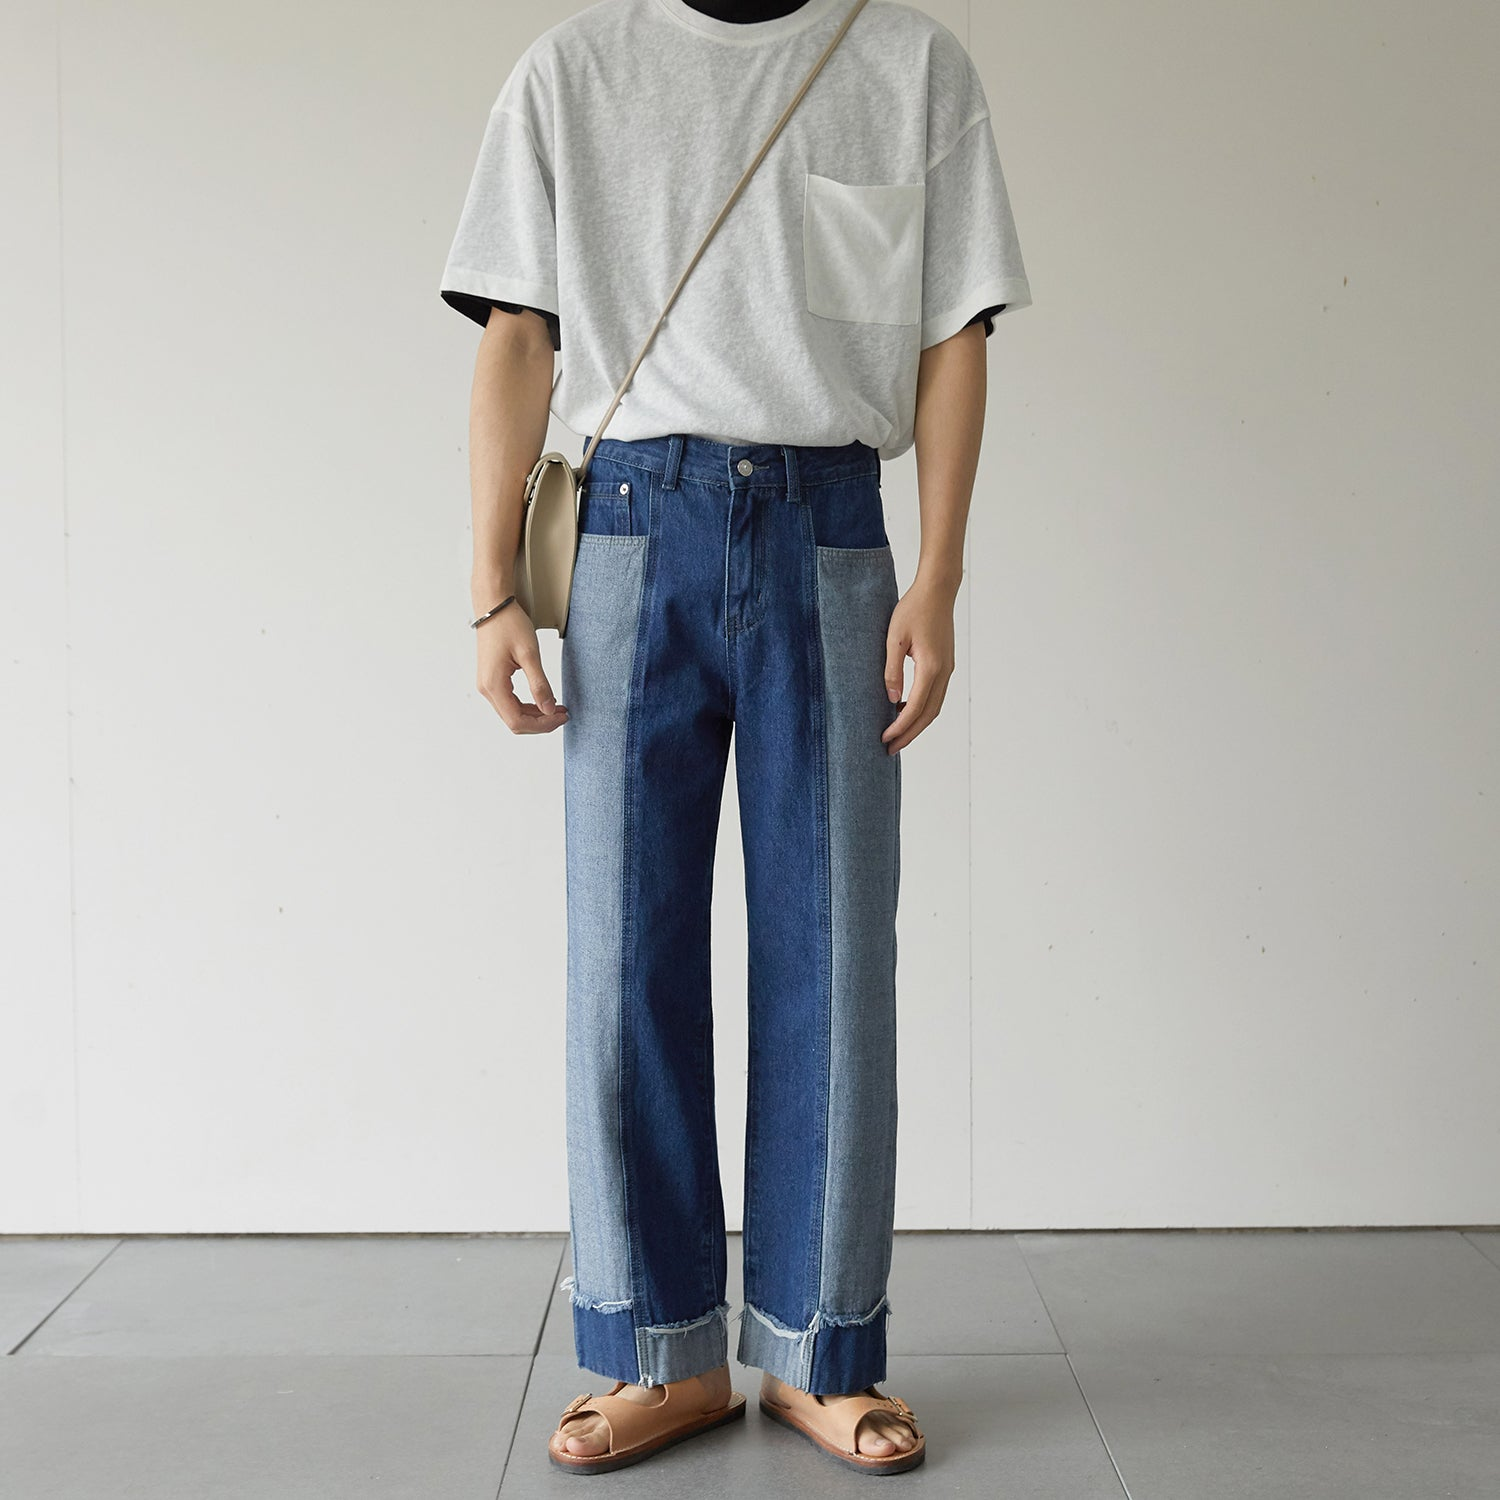 OH Two Tone Jeans - OH 2x